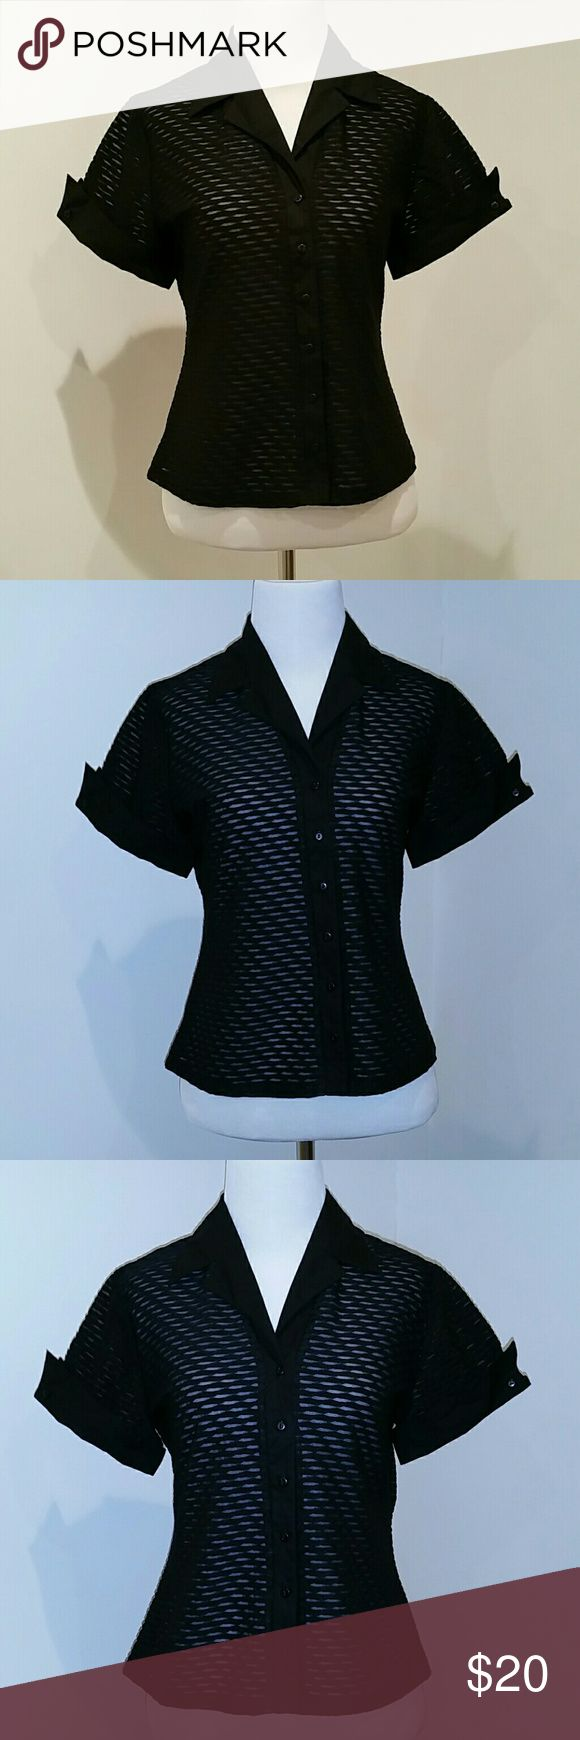 Josephine Chaus Black Top petite size 8 Josephine Chaus.  Black Top.  Petite size 8P.  Button down.  Short sleeve.  Fitted waist.  Cuffs and buttons. Josephine Chaus Tops Button Down Shirts